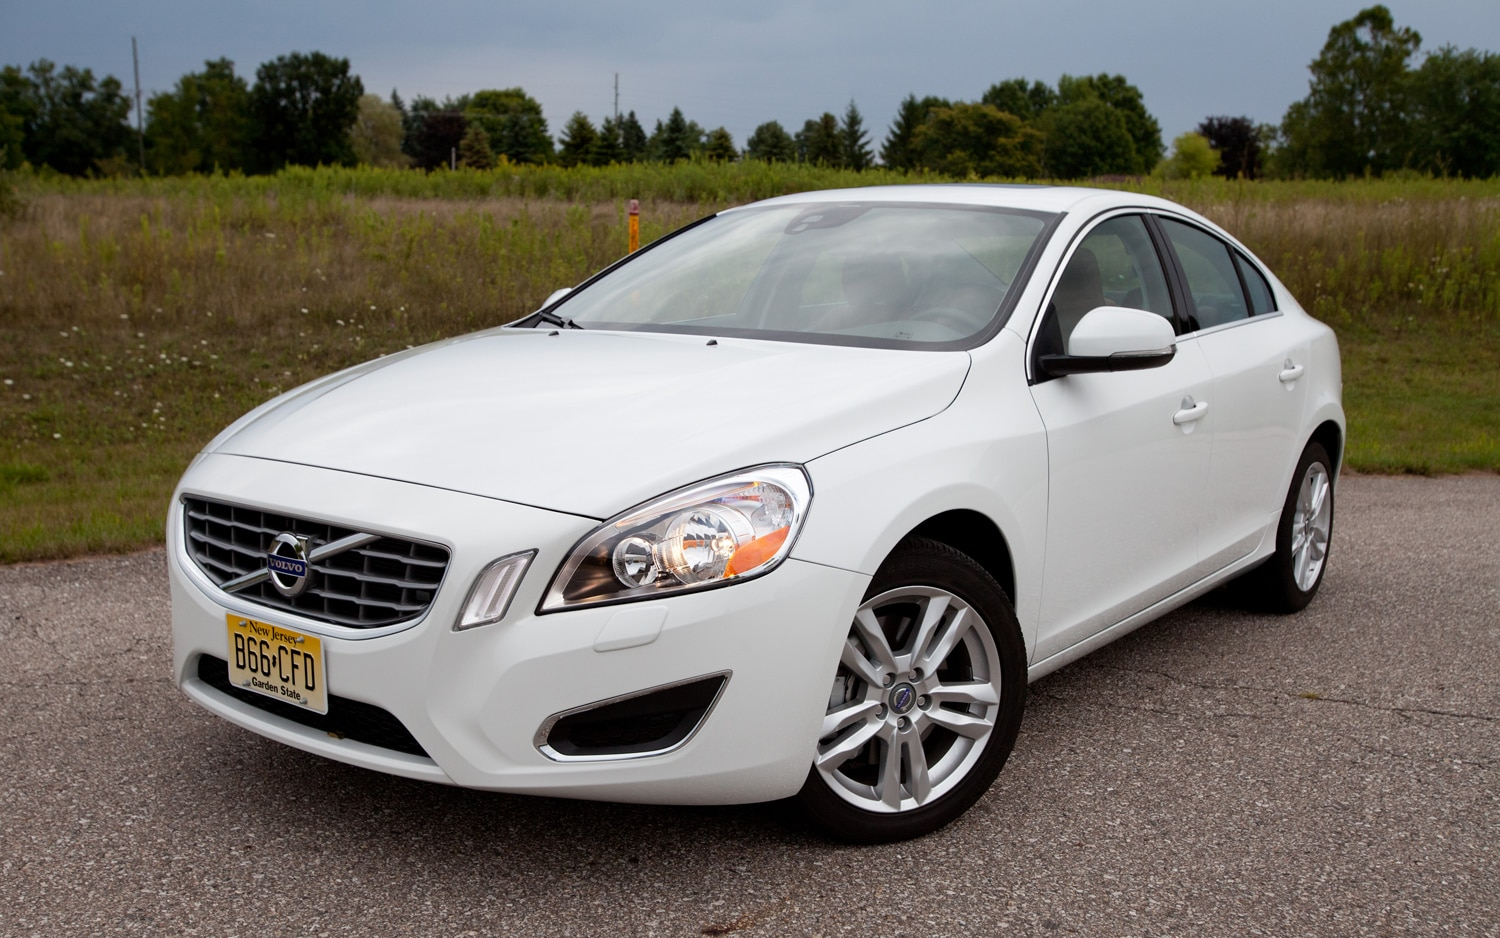 2013 Volvo S60 T5 AWD Front Three Quarters1